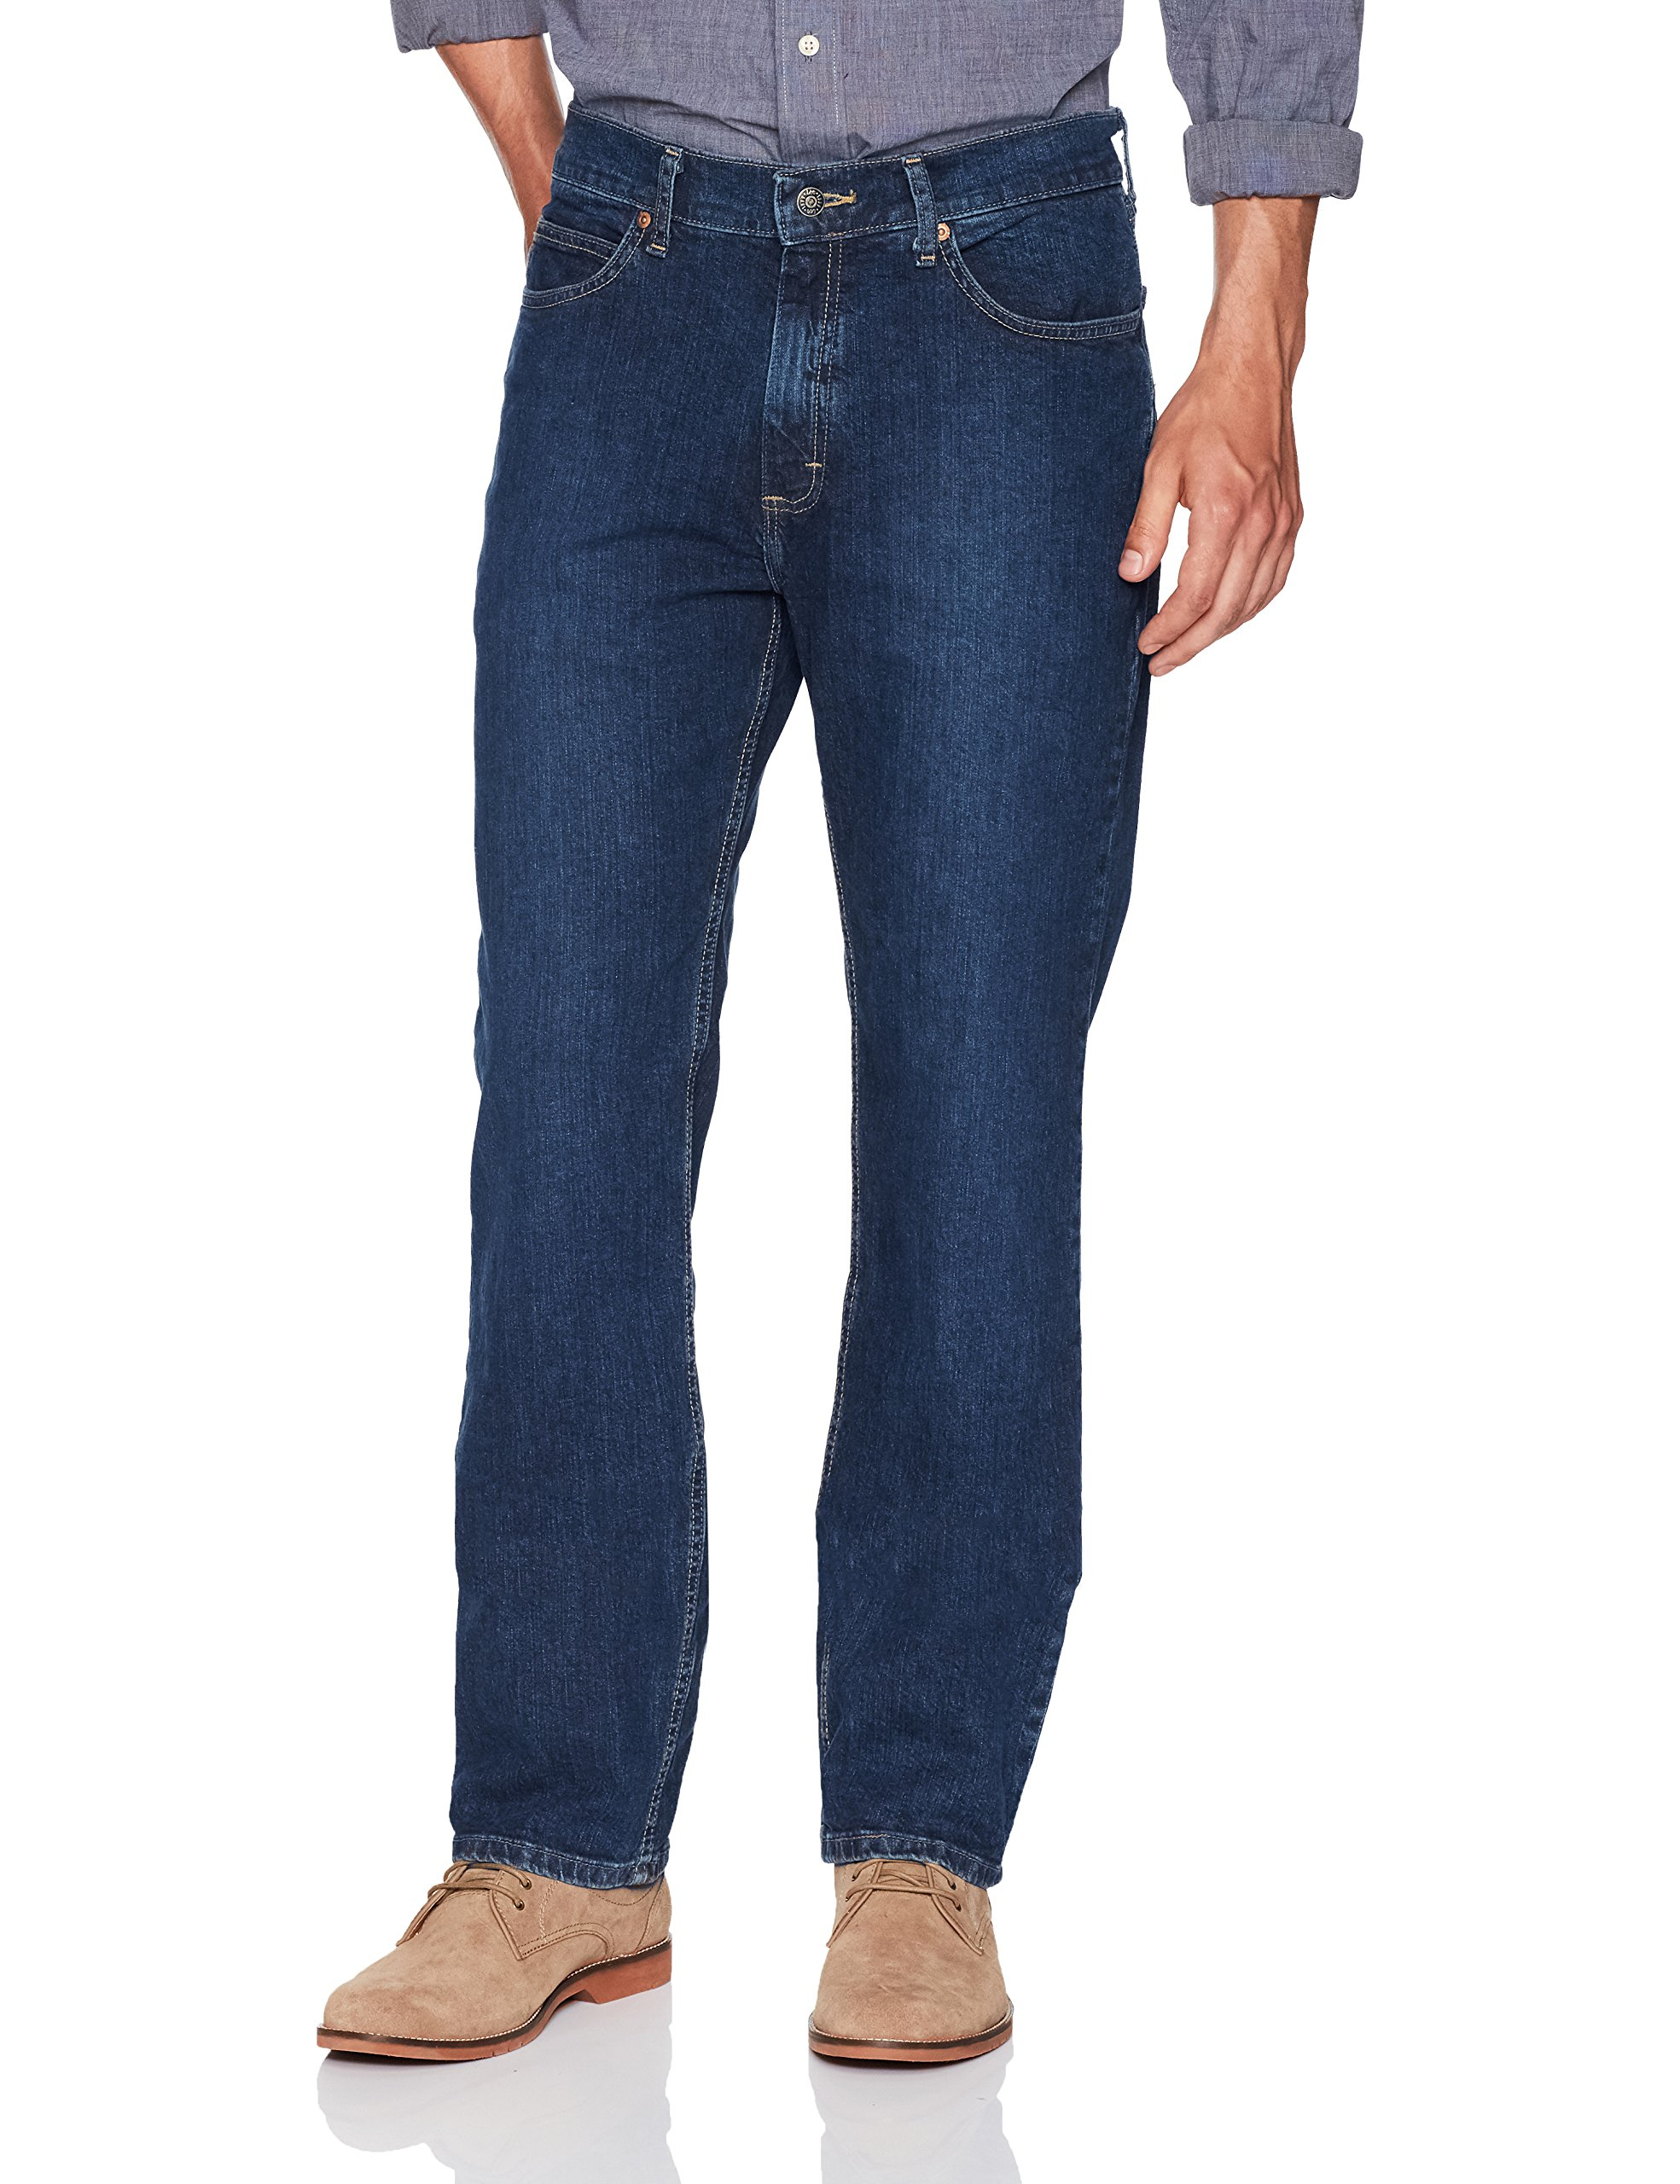 LEE Men's Relaxed Fit Straight Leg Jean, Kramer, 36W x 34L